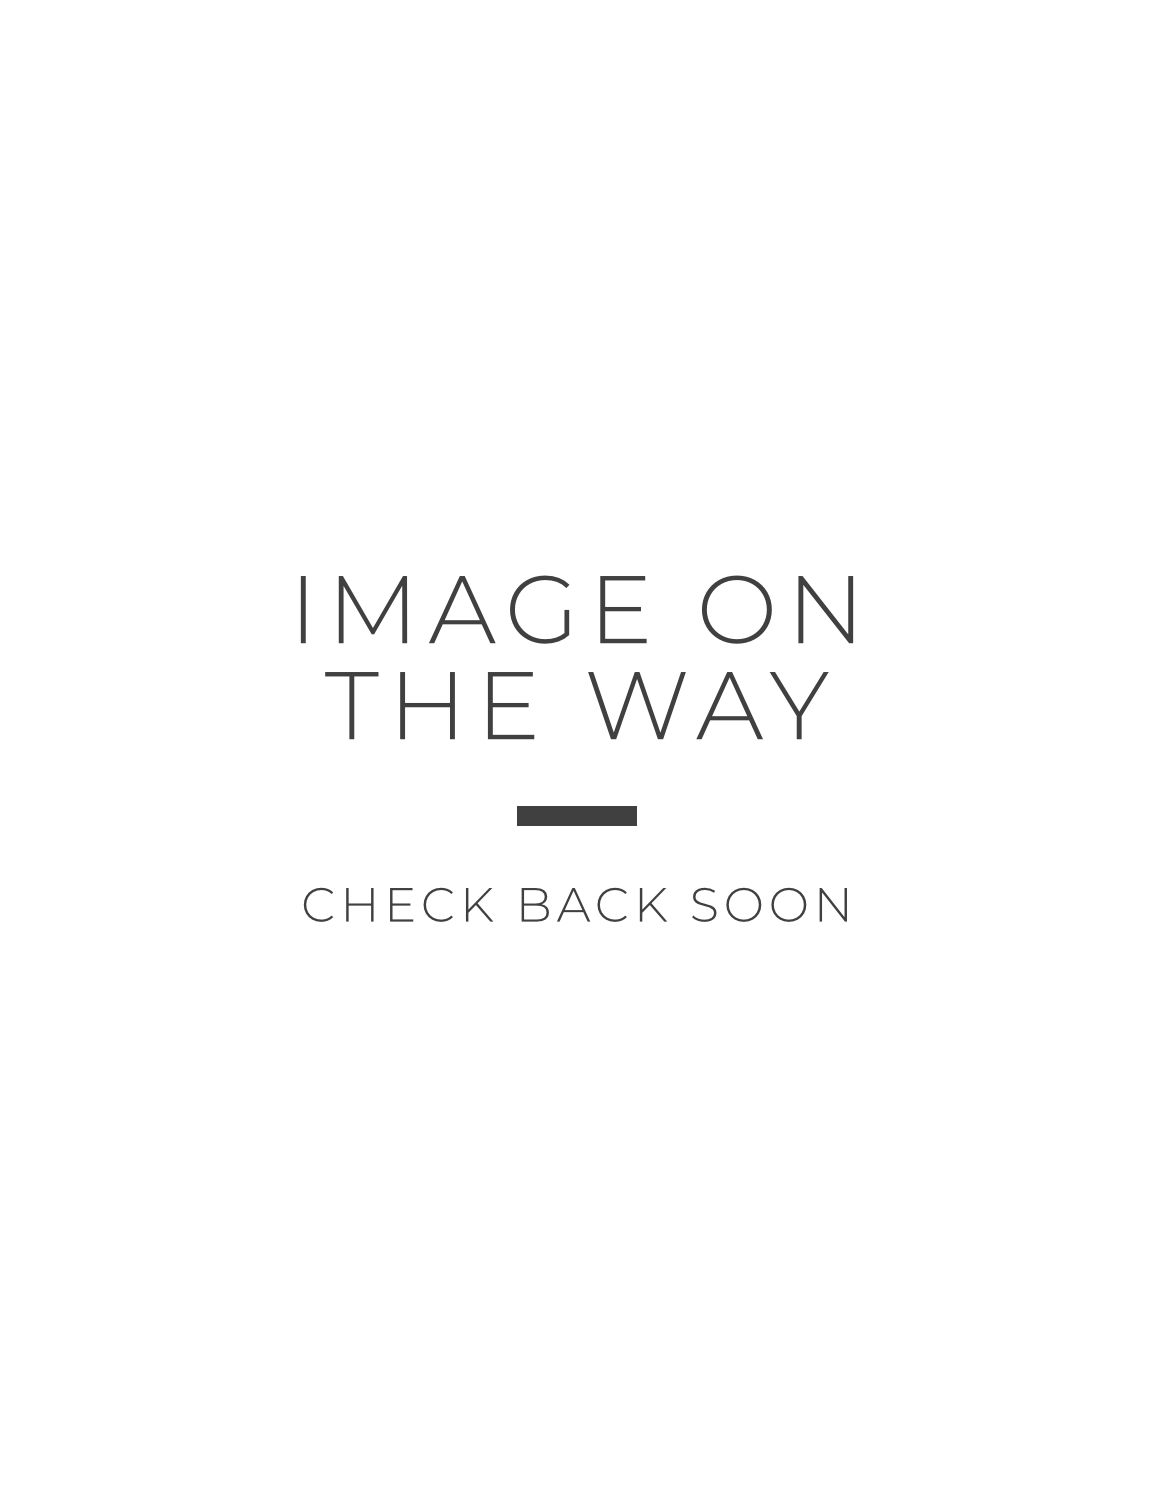 Lane Bryant Women's Strappy-Back Tanga Panty 22/24 Shaded Foral